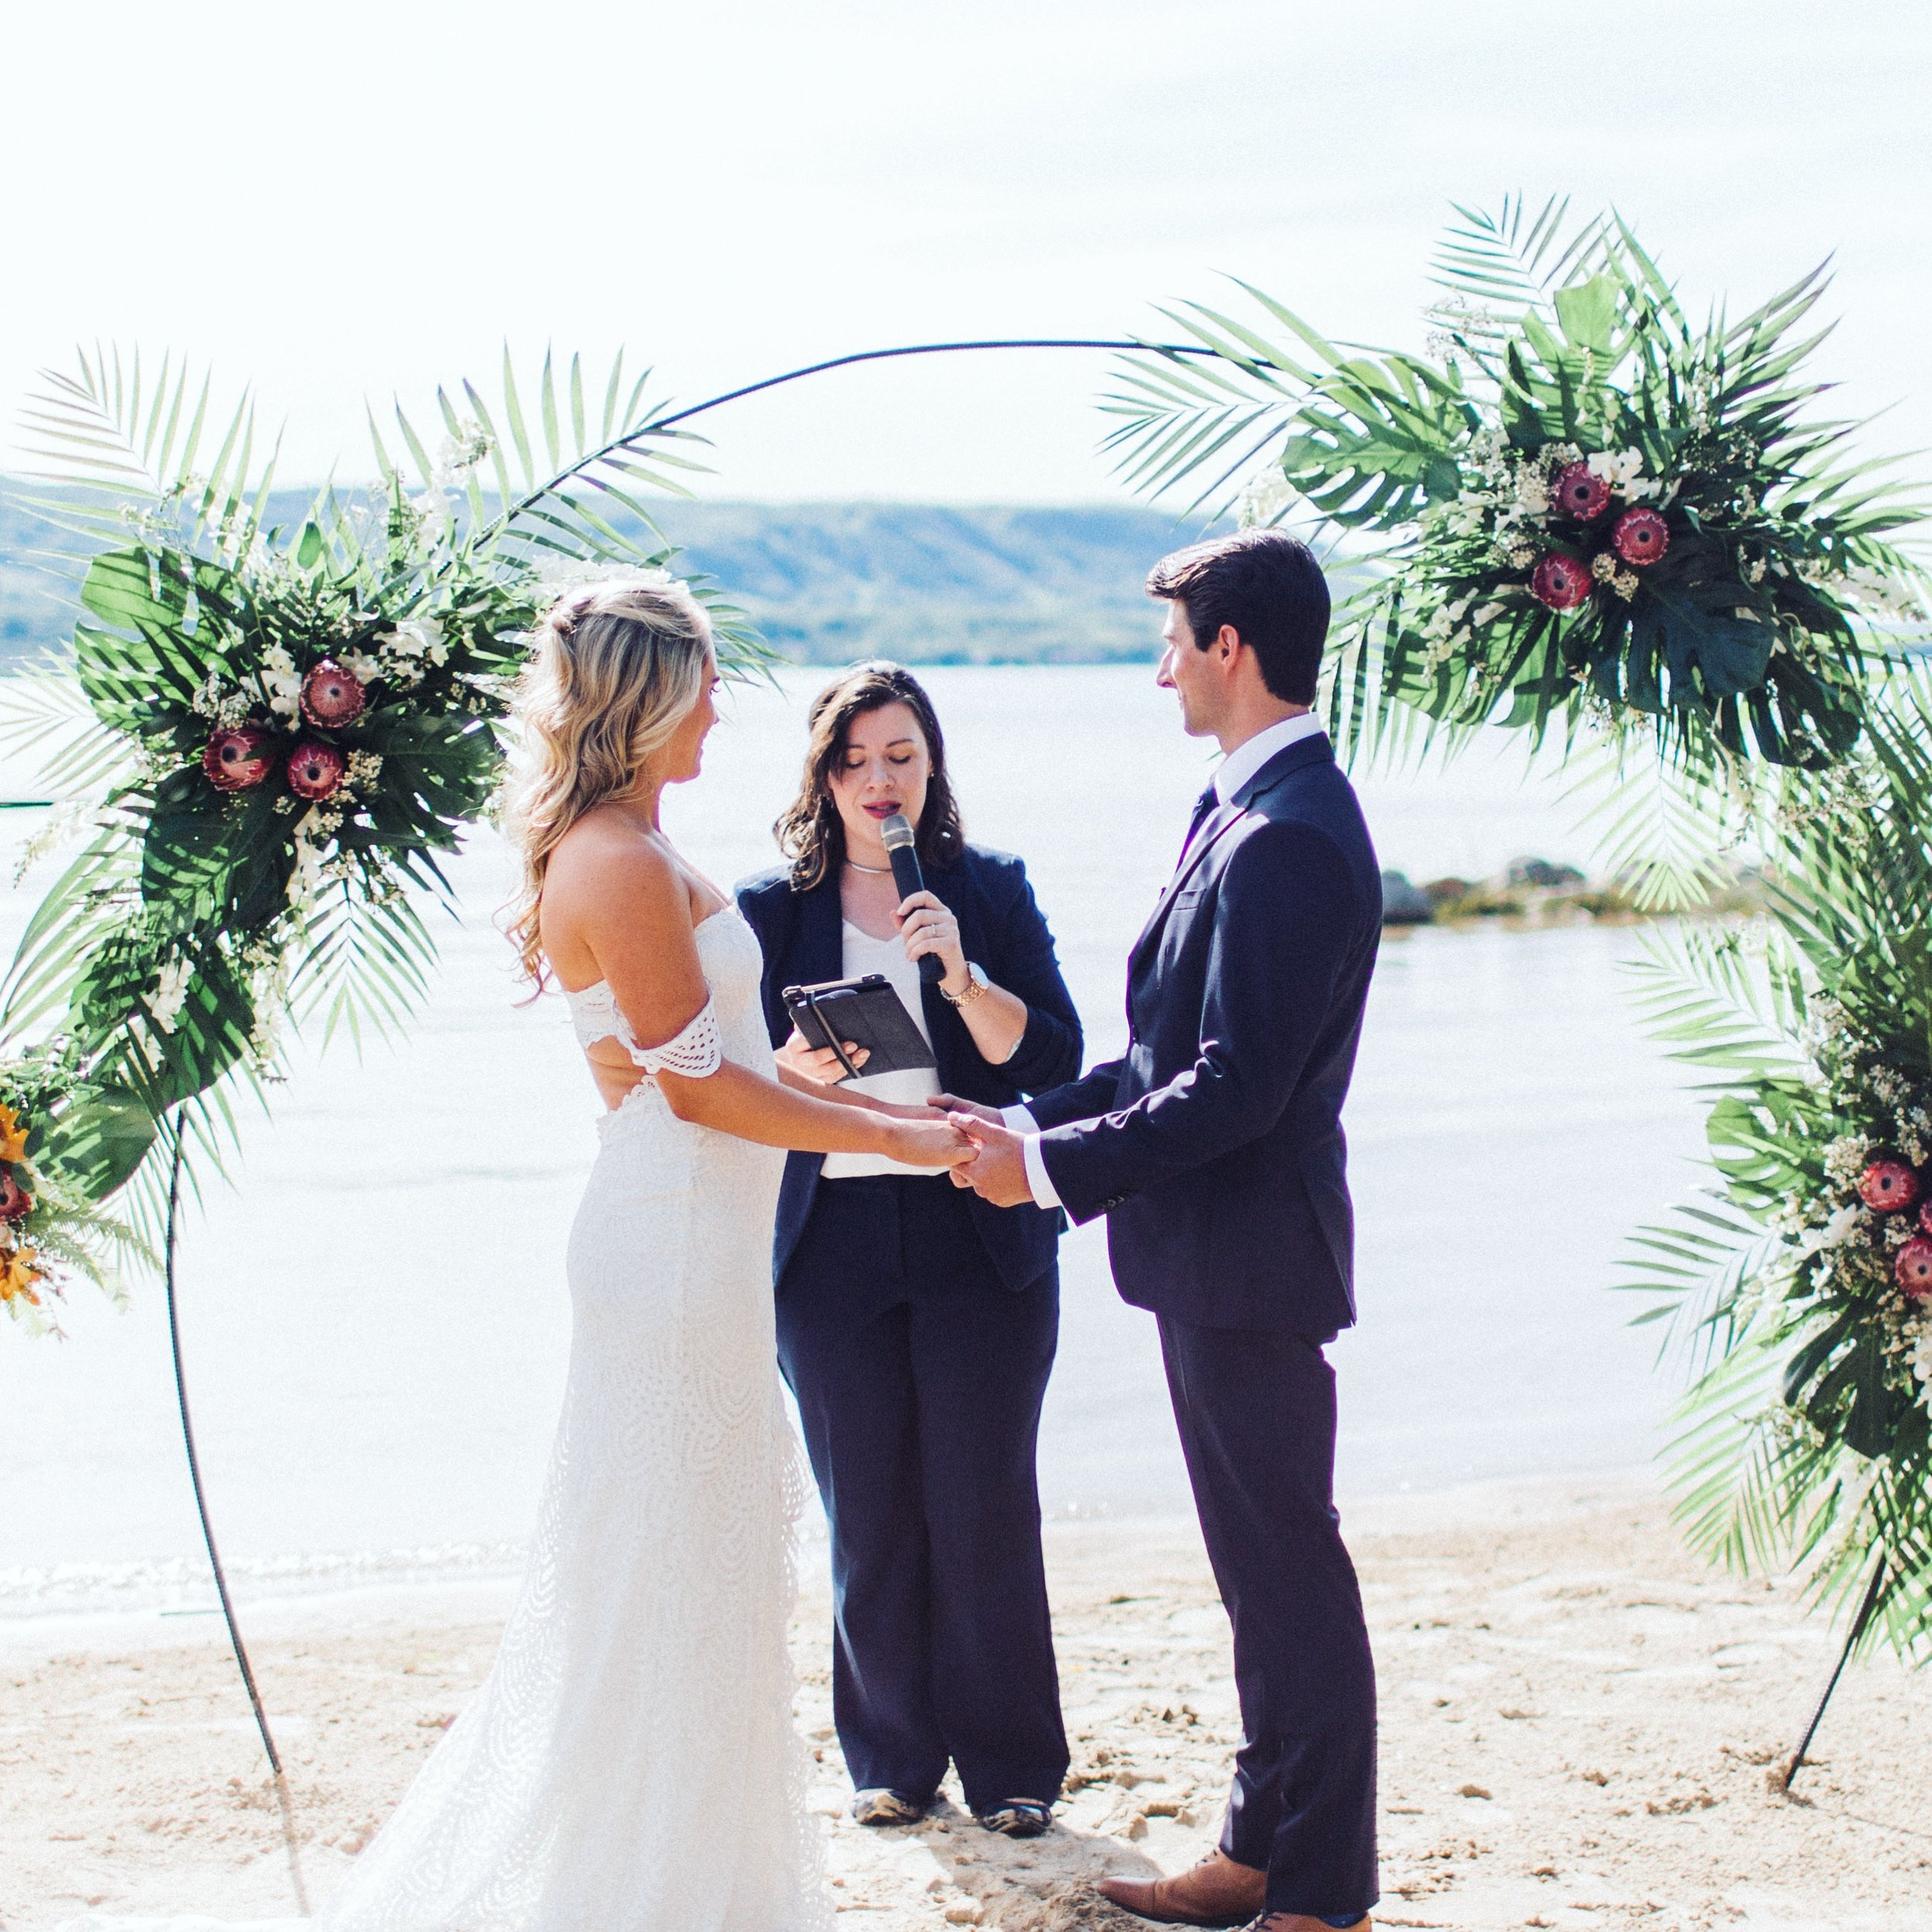 Spencer & Christine - September 2018 (Corynn Fowler Photography )